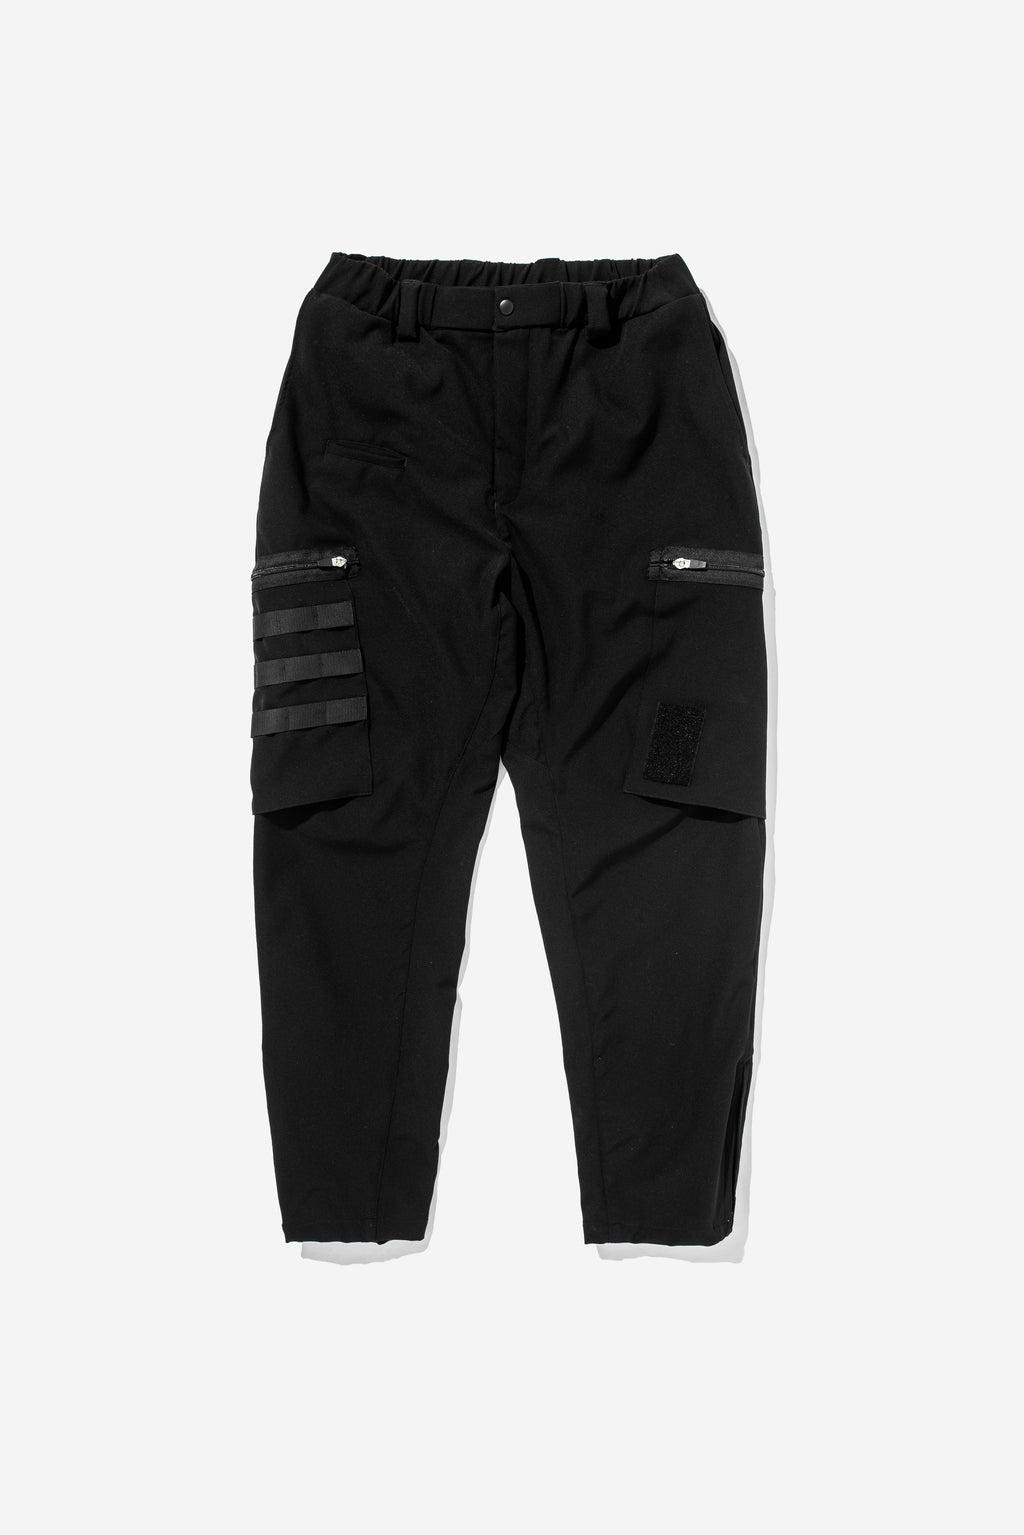 "0. idle/idō x ORBITgear ""BOTTOMLESS"" Pants"